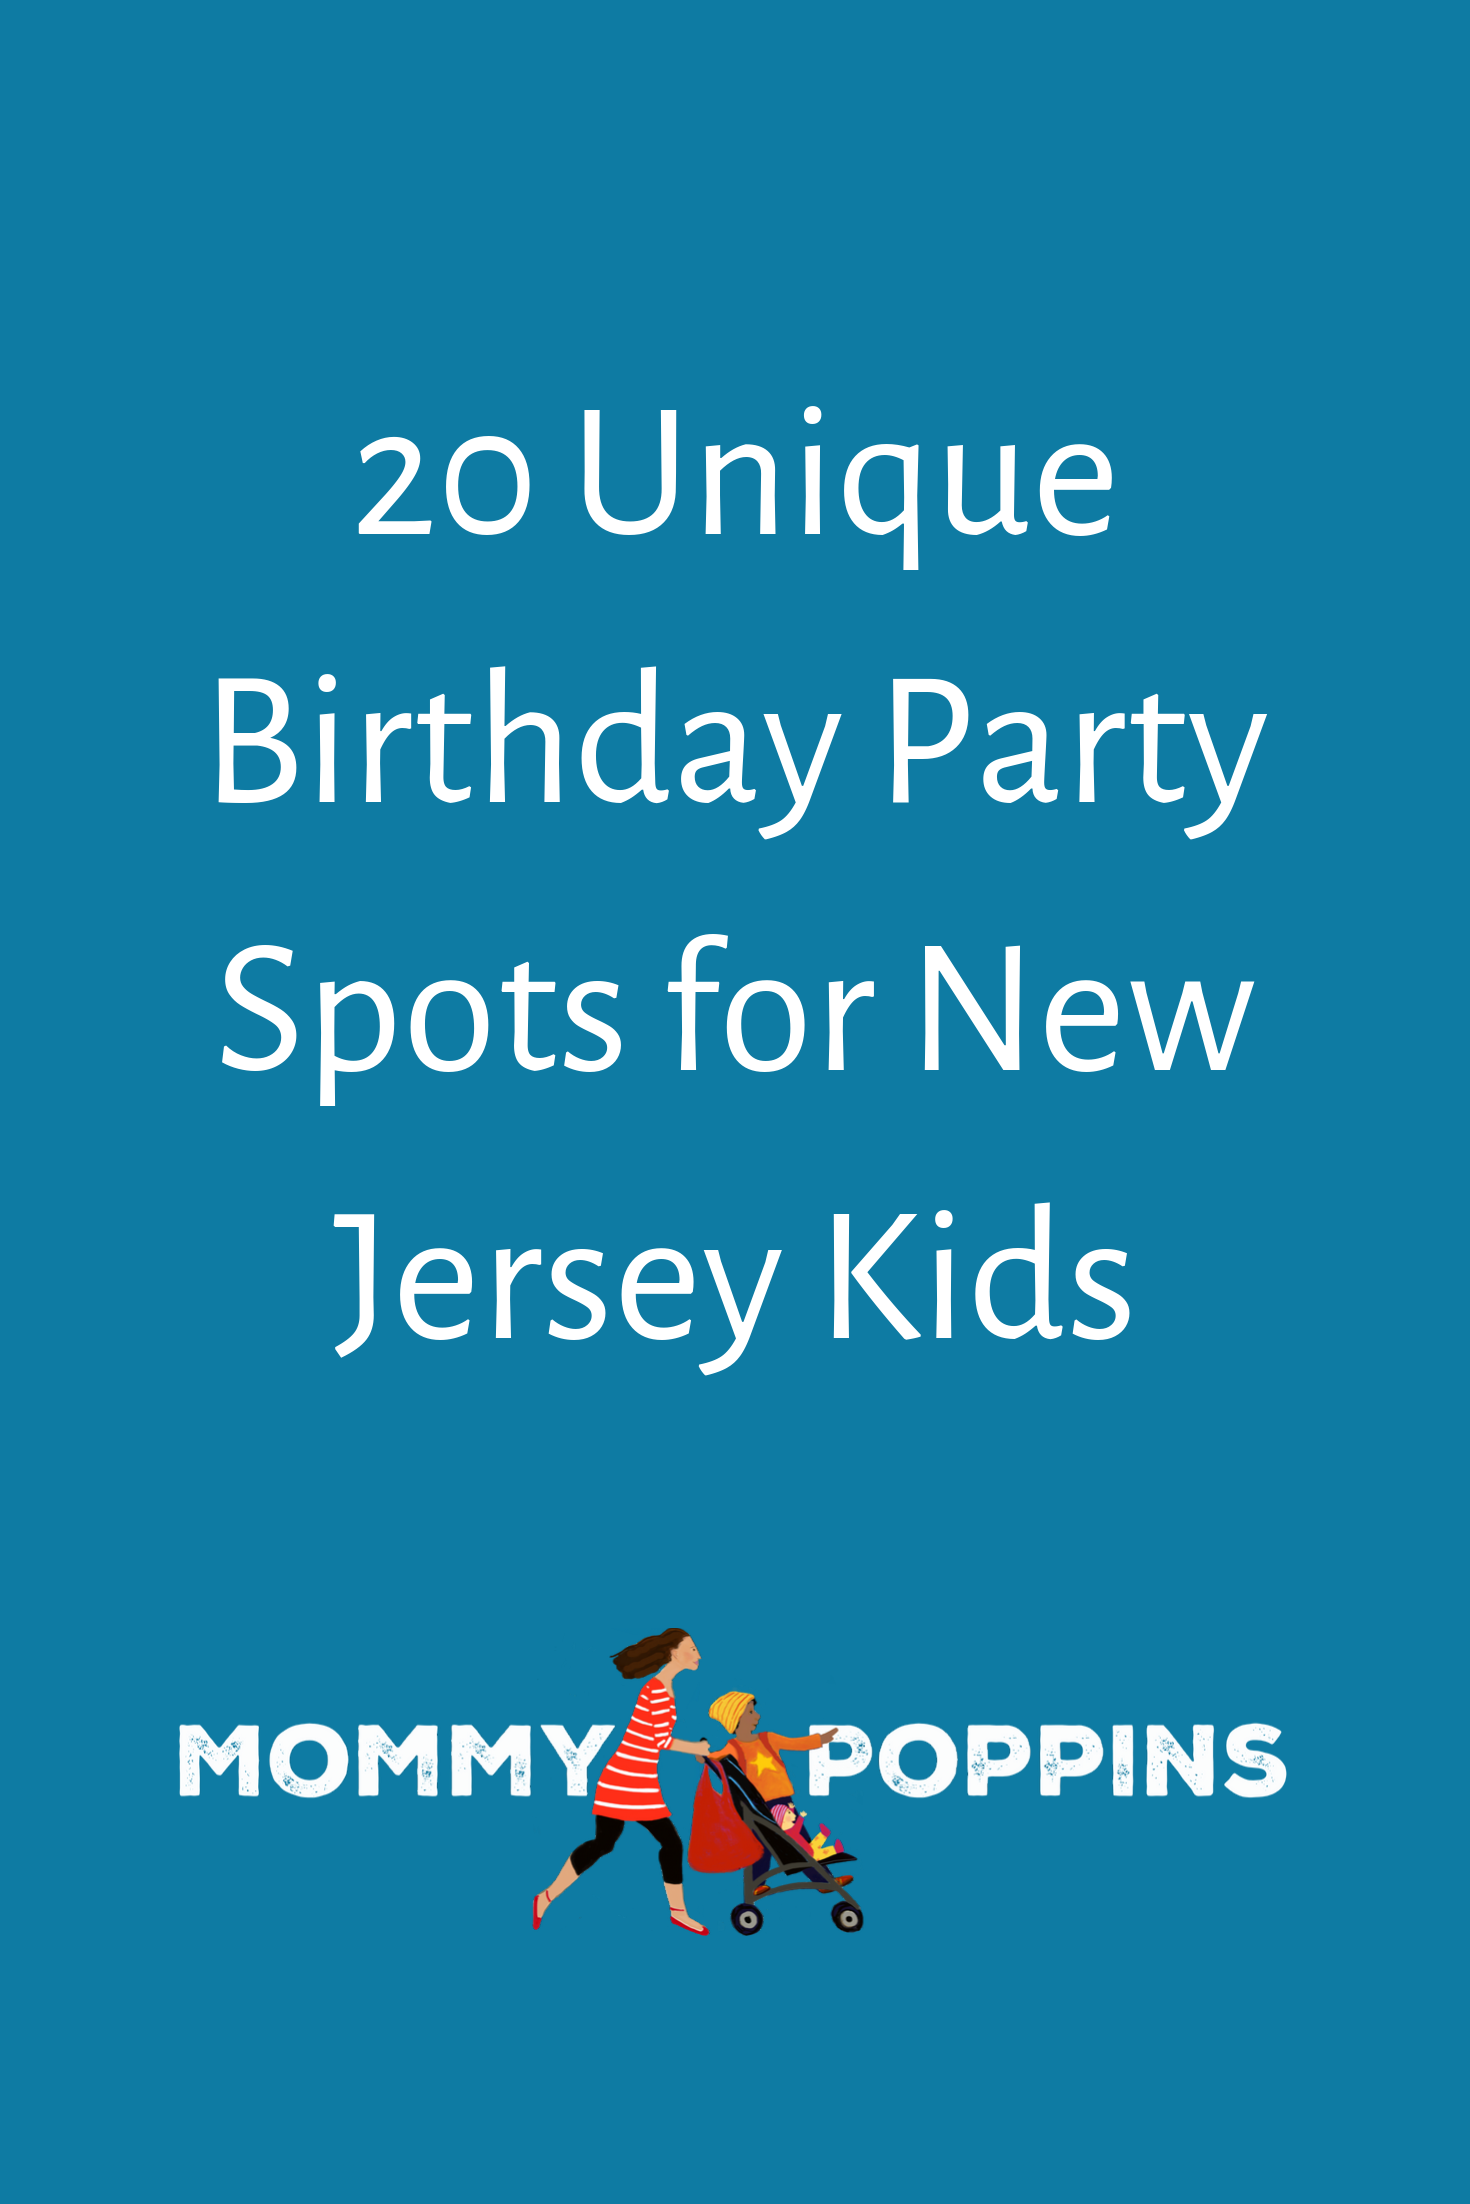 20 Unique Birthday Party Spots for NJ Kids Nyc with kids